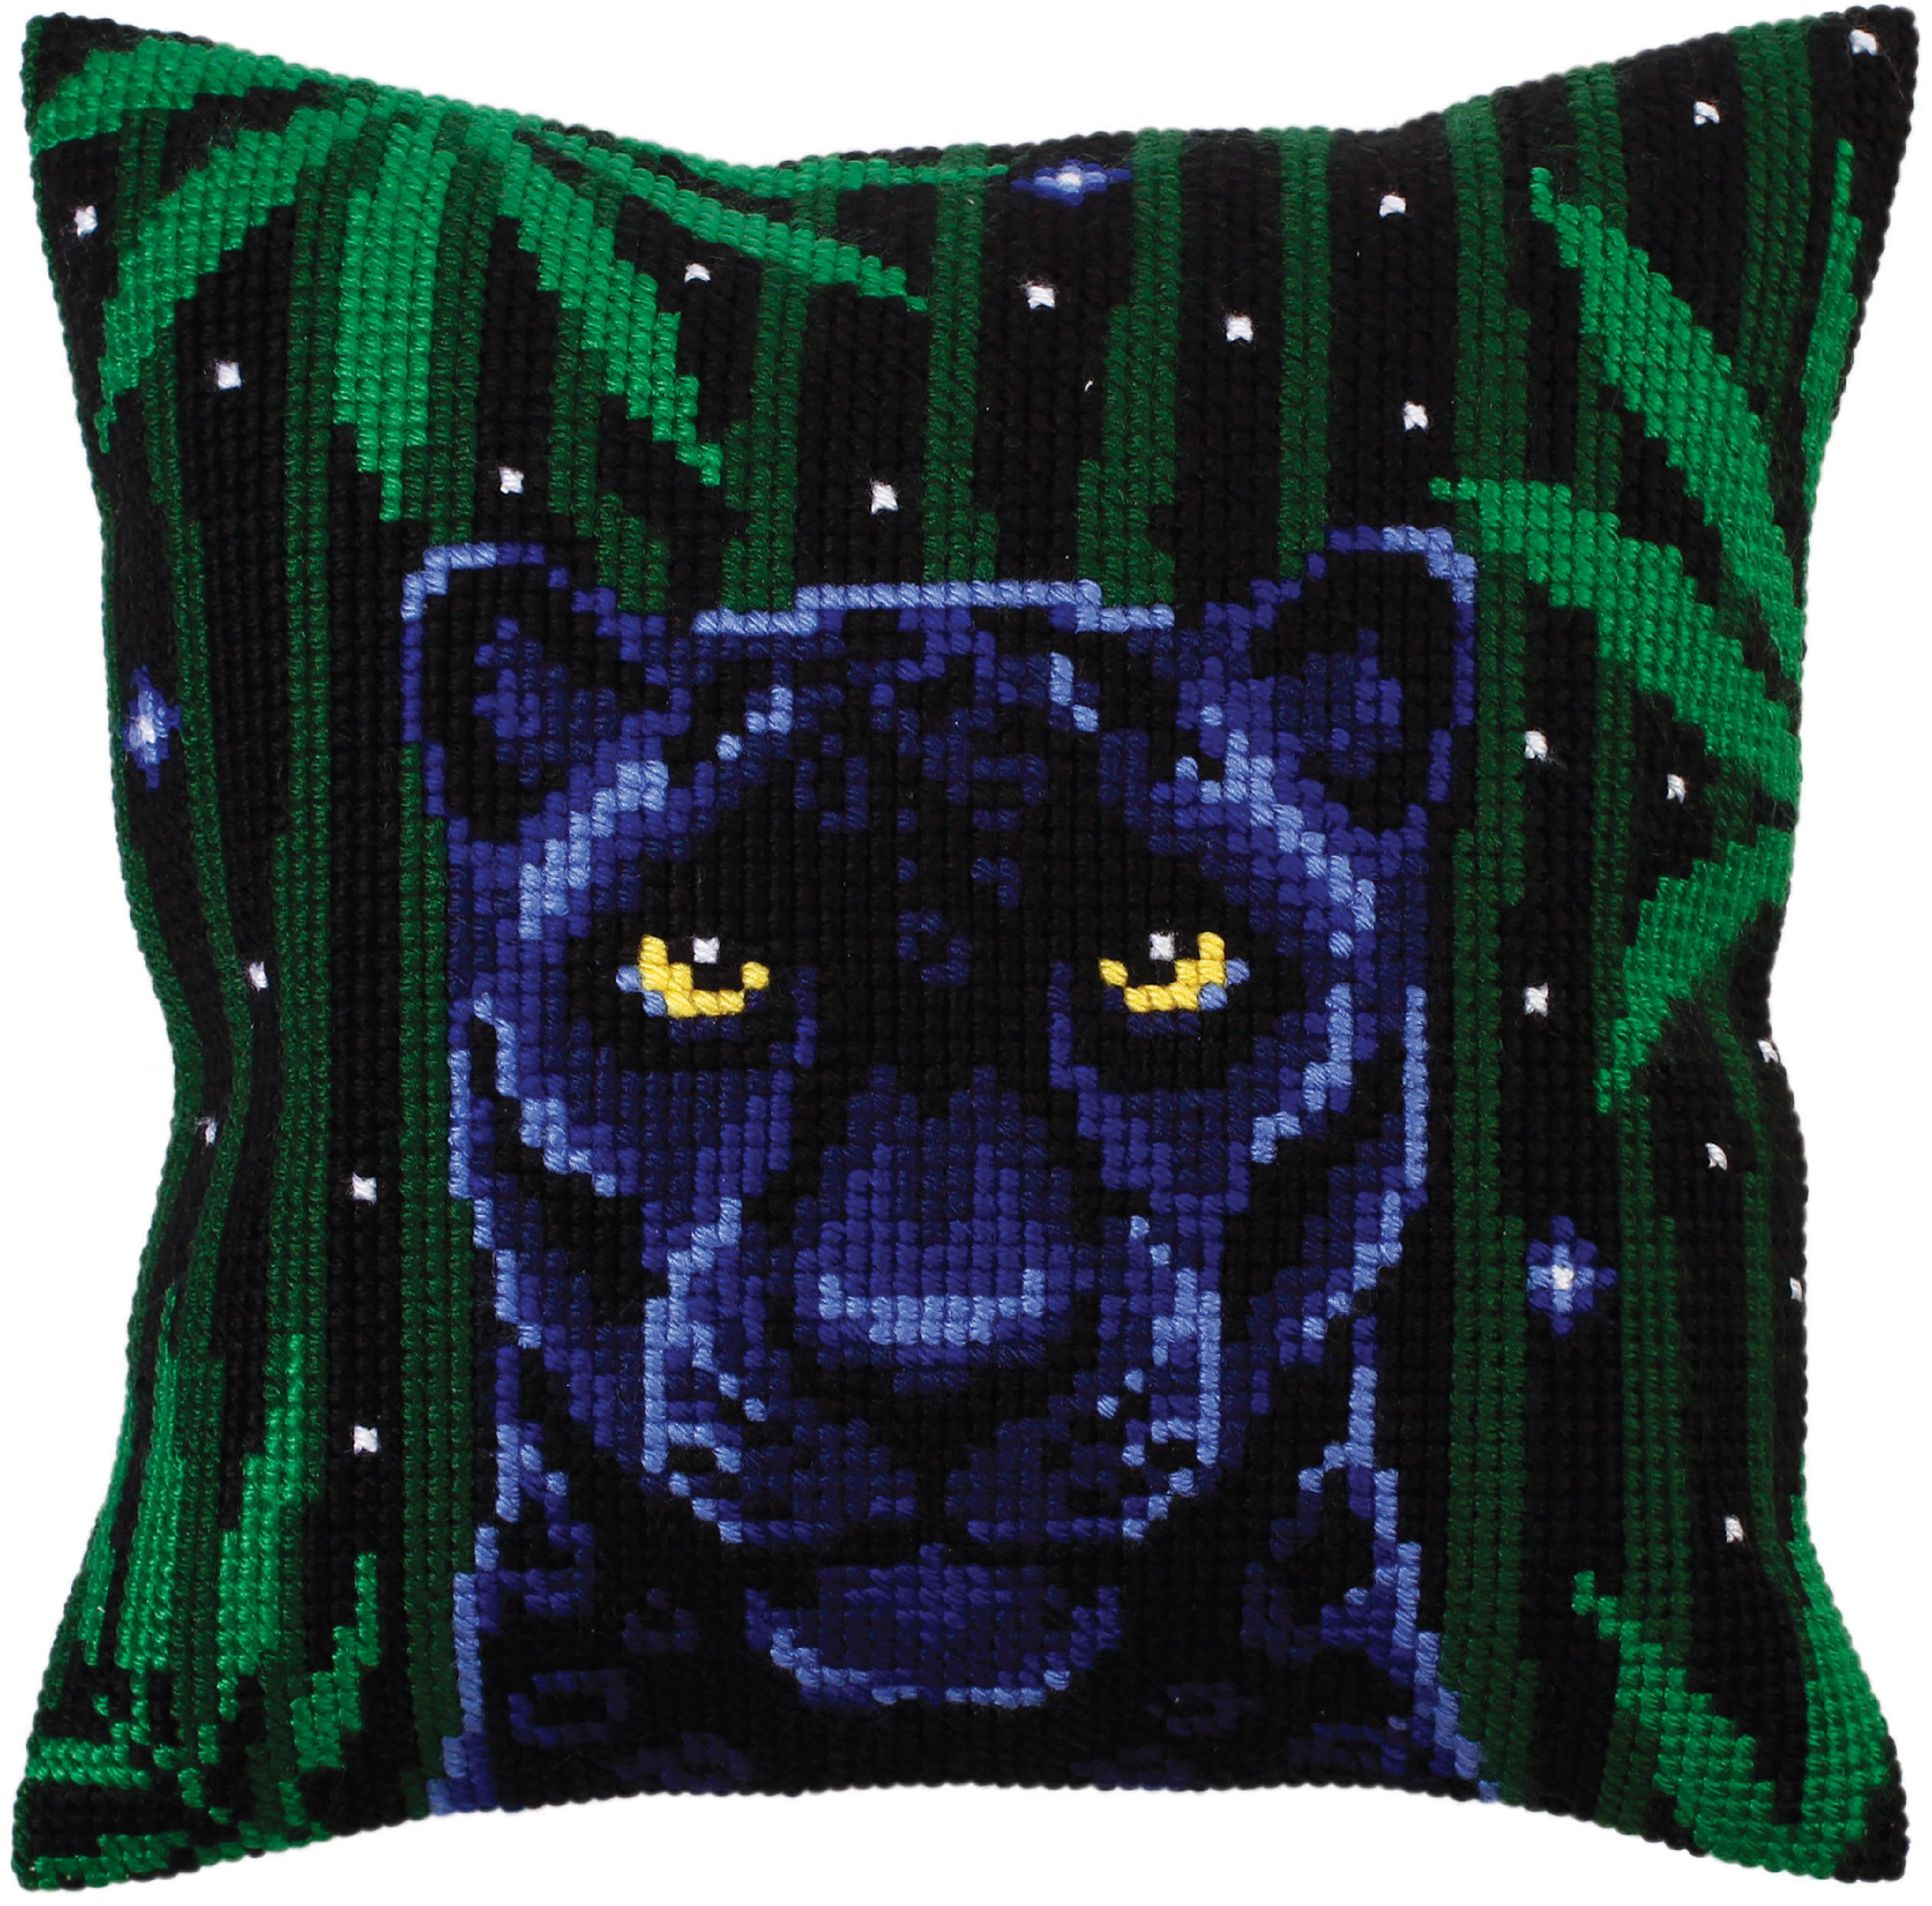 Collection D'Art Stamped Needlepoint Cushion Kit 40X40cm-Night Jungle III